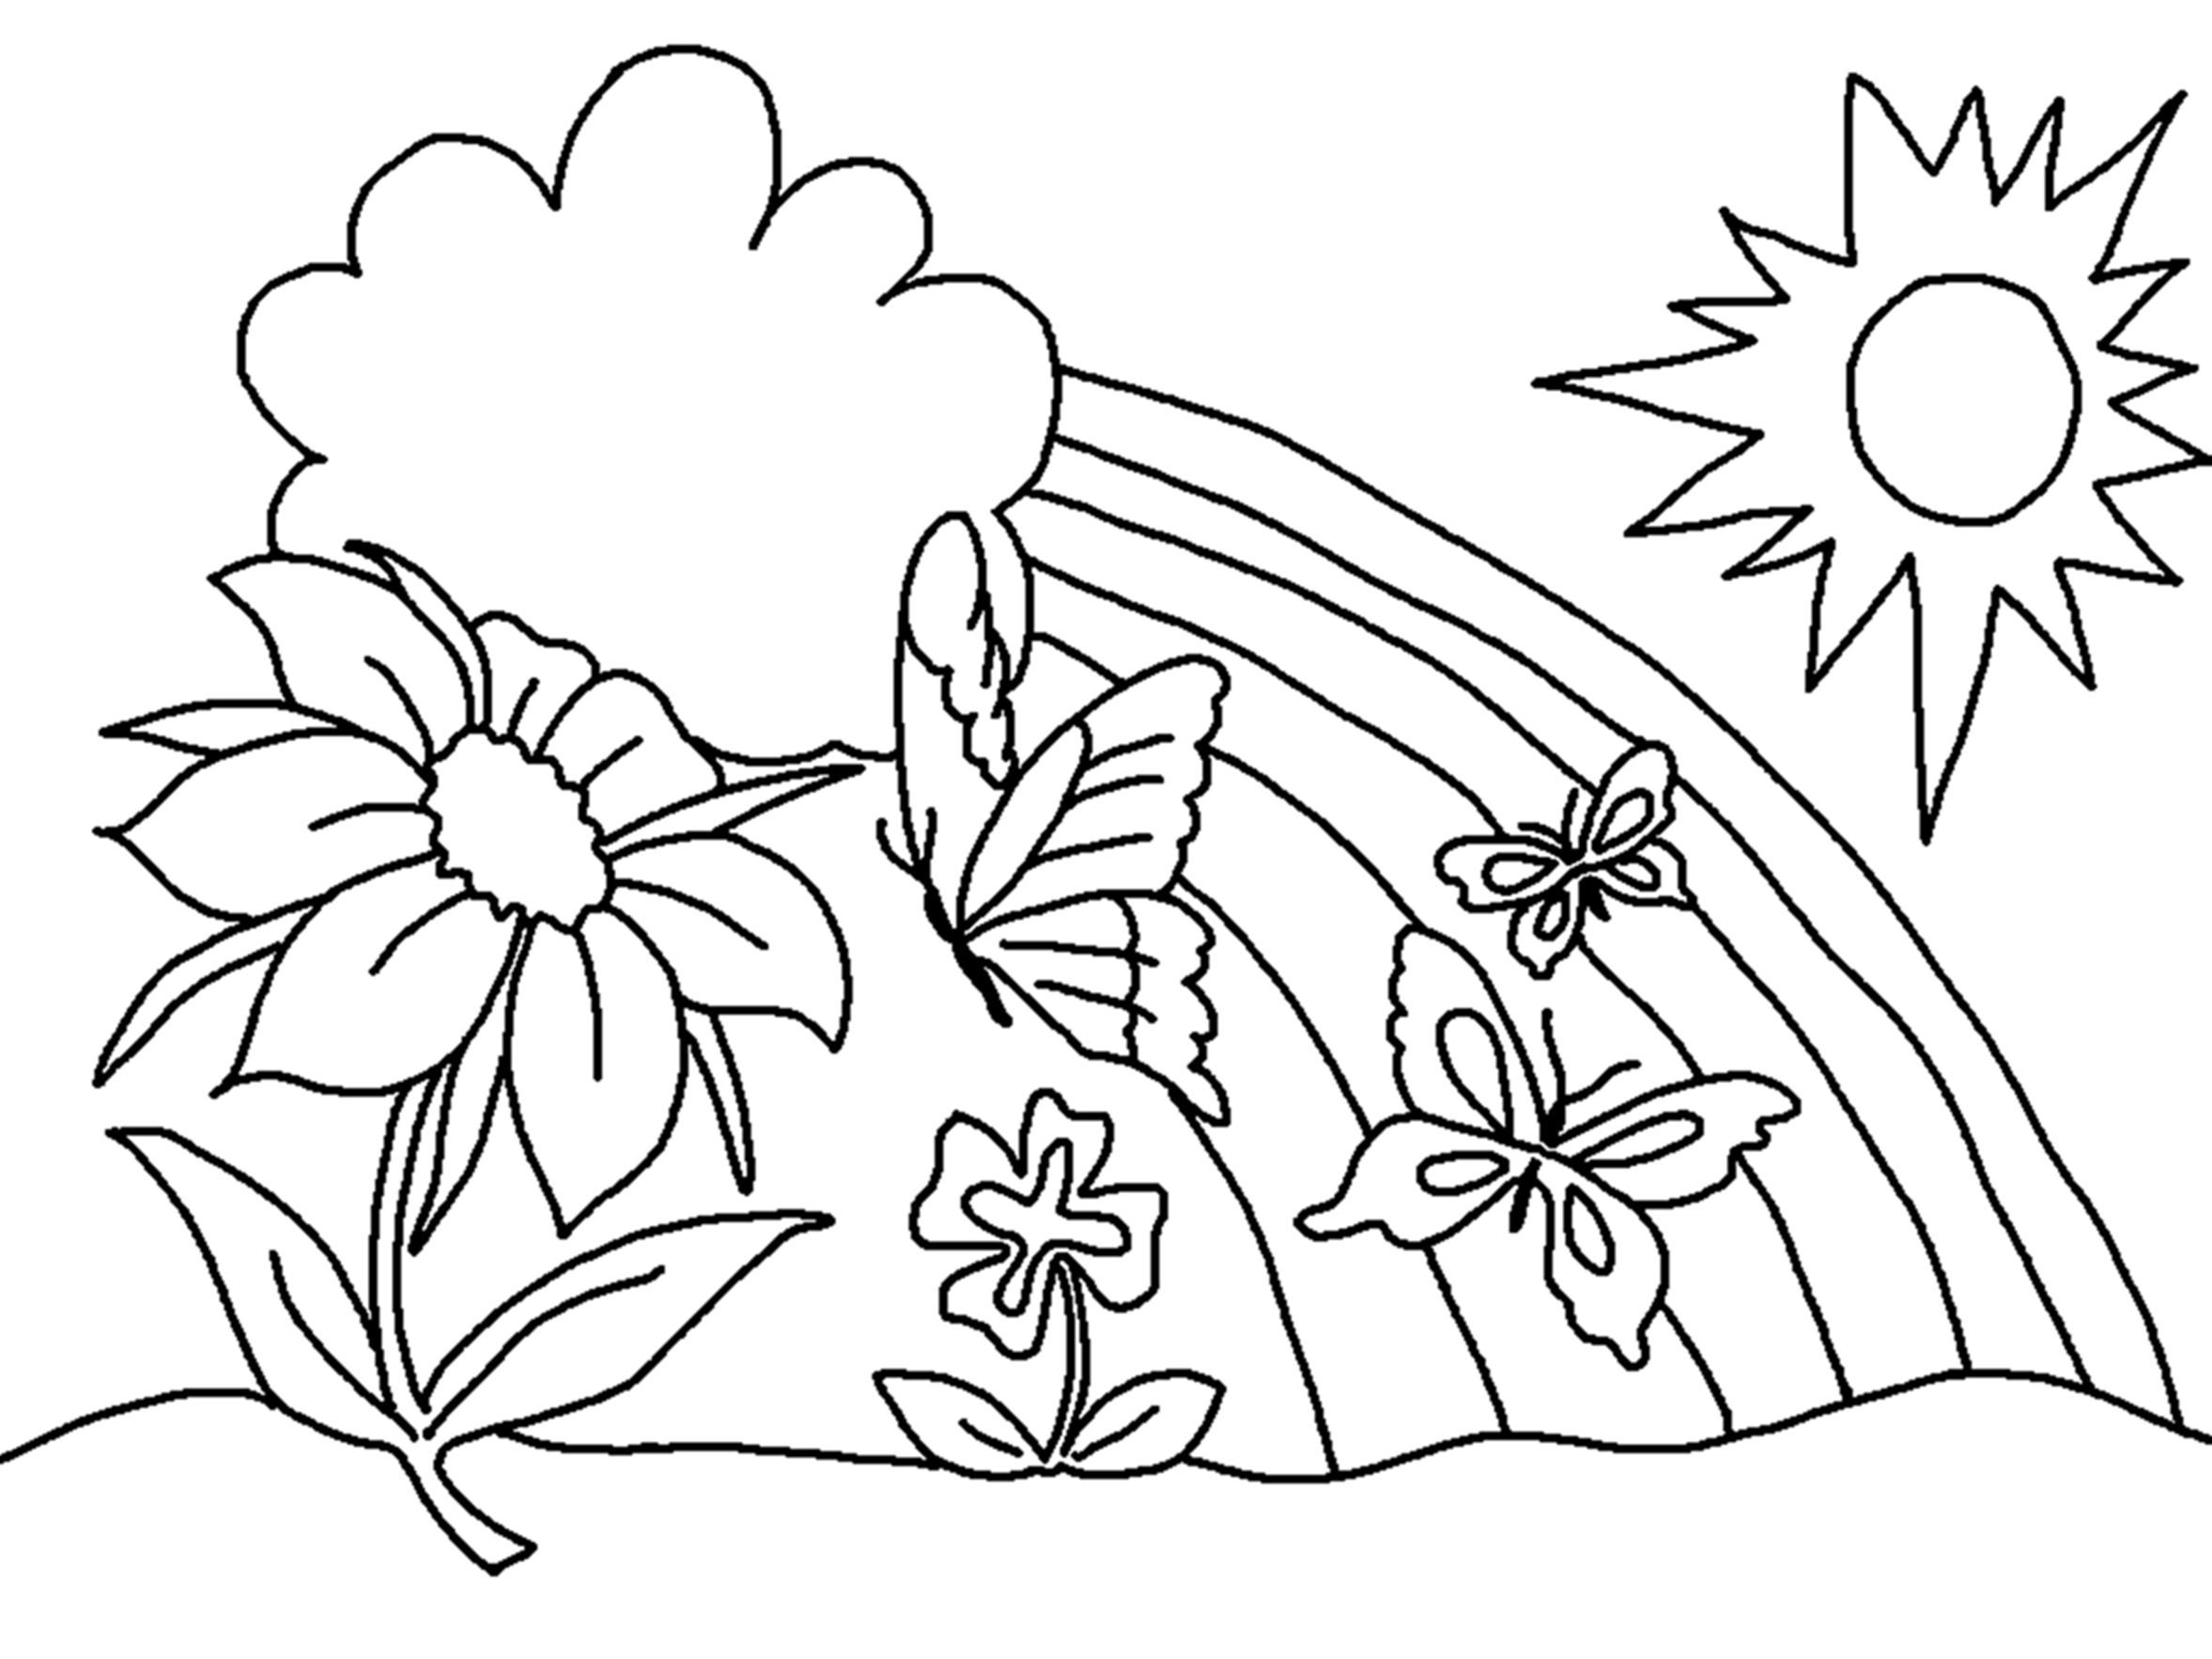 flowers coloring pages for free printable flower coloring pages for best coloring - Free Coloring Pages Of Flowers